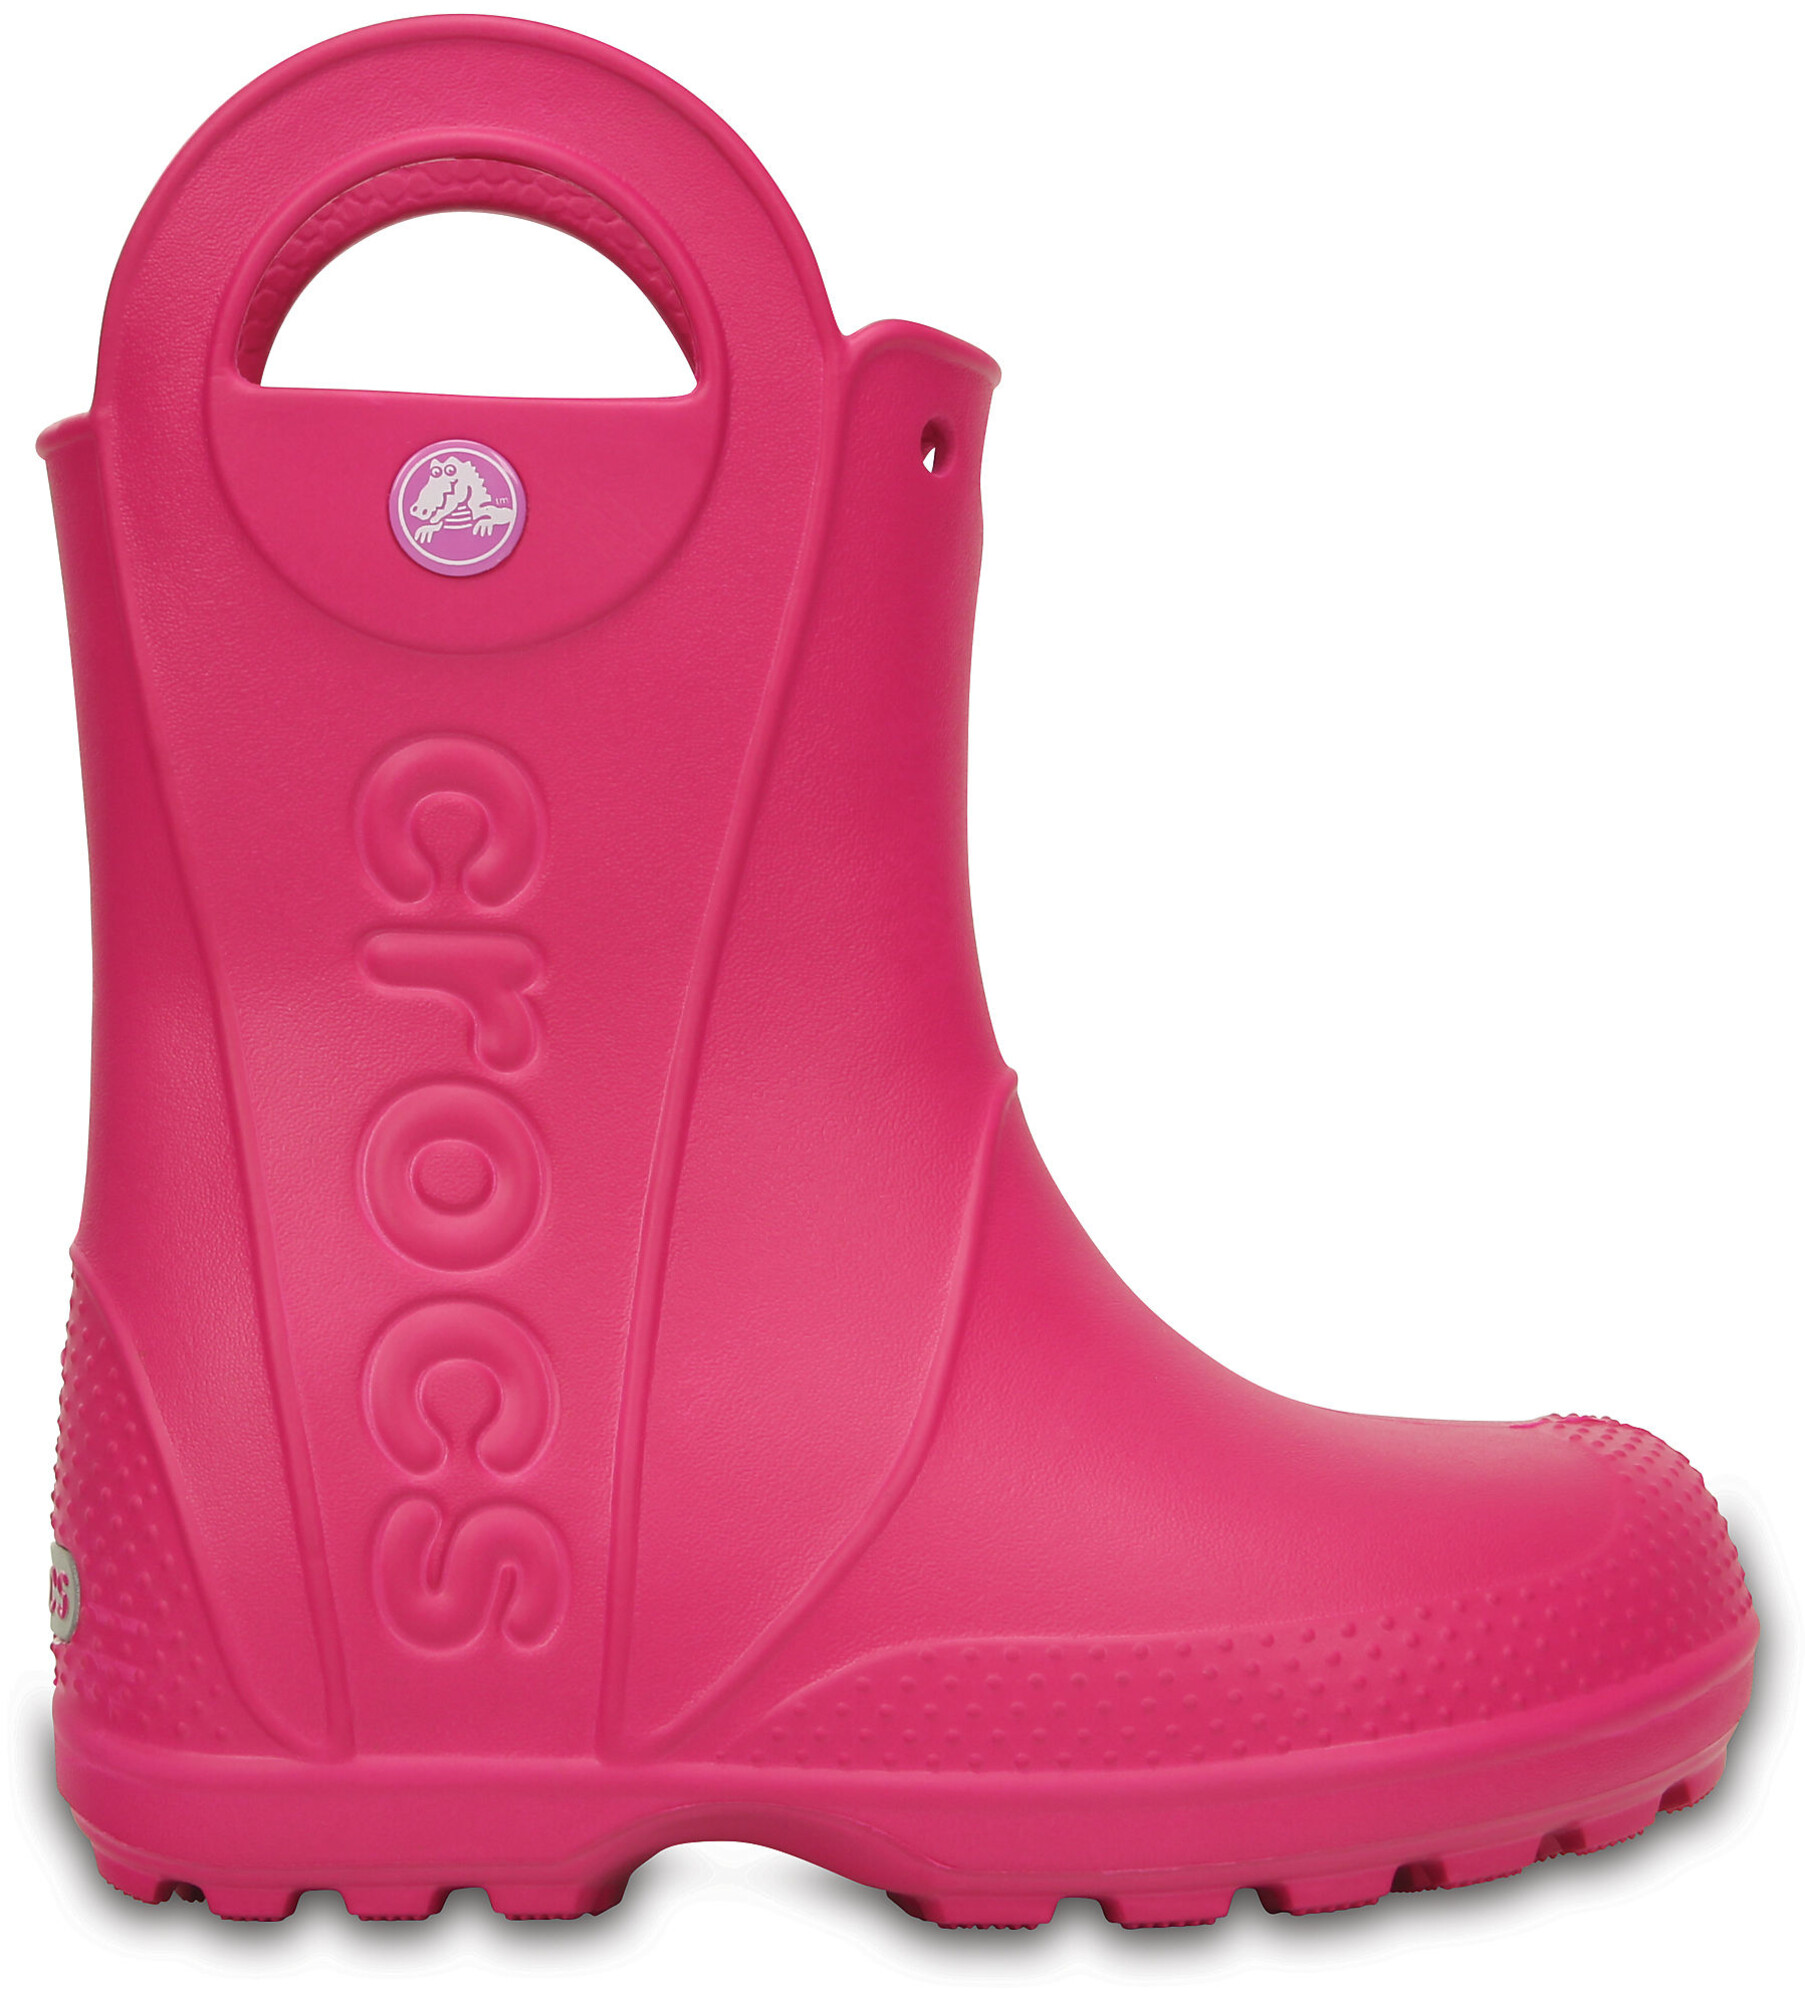 d342a1313604 Crocs Handle It Rubber Boots Children pink at Addnature.co.uk